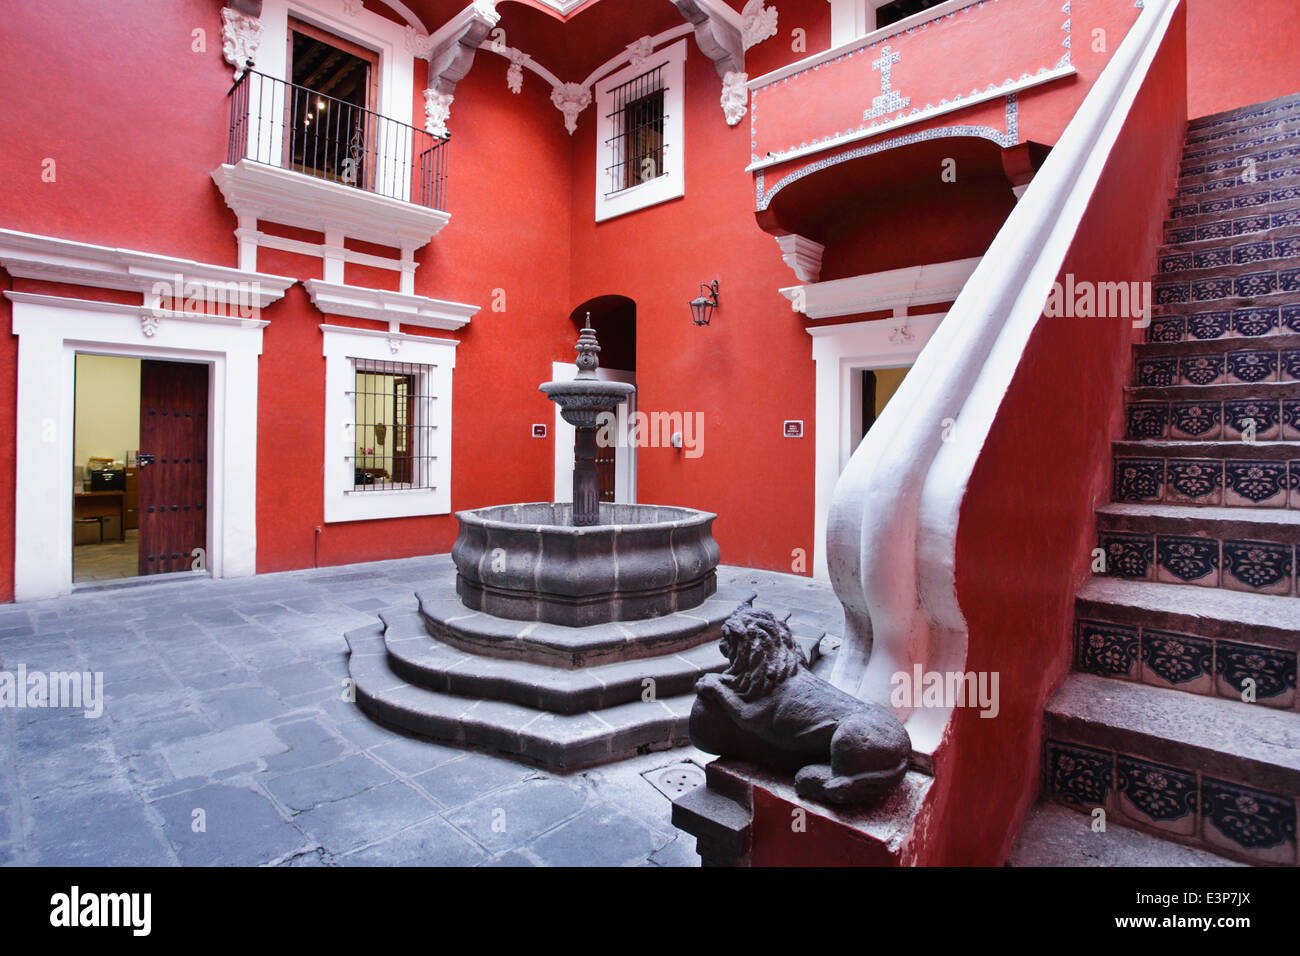 Patio of the Casa del Alfenique in Puebla, Mexico. - Stock Image